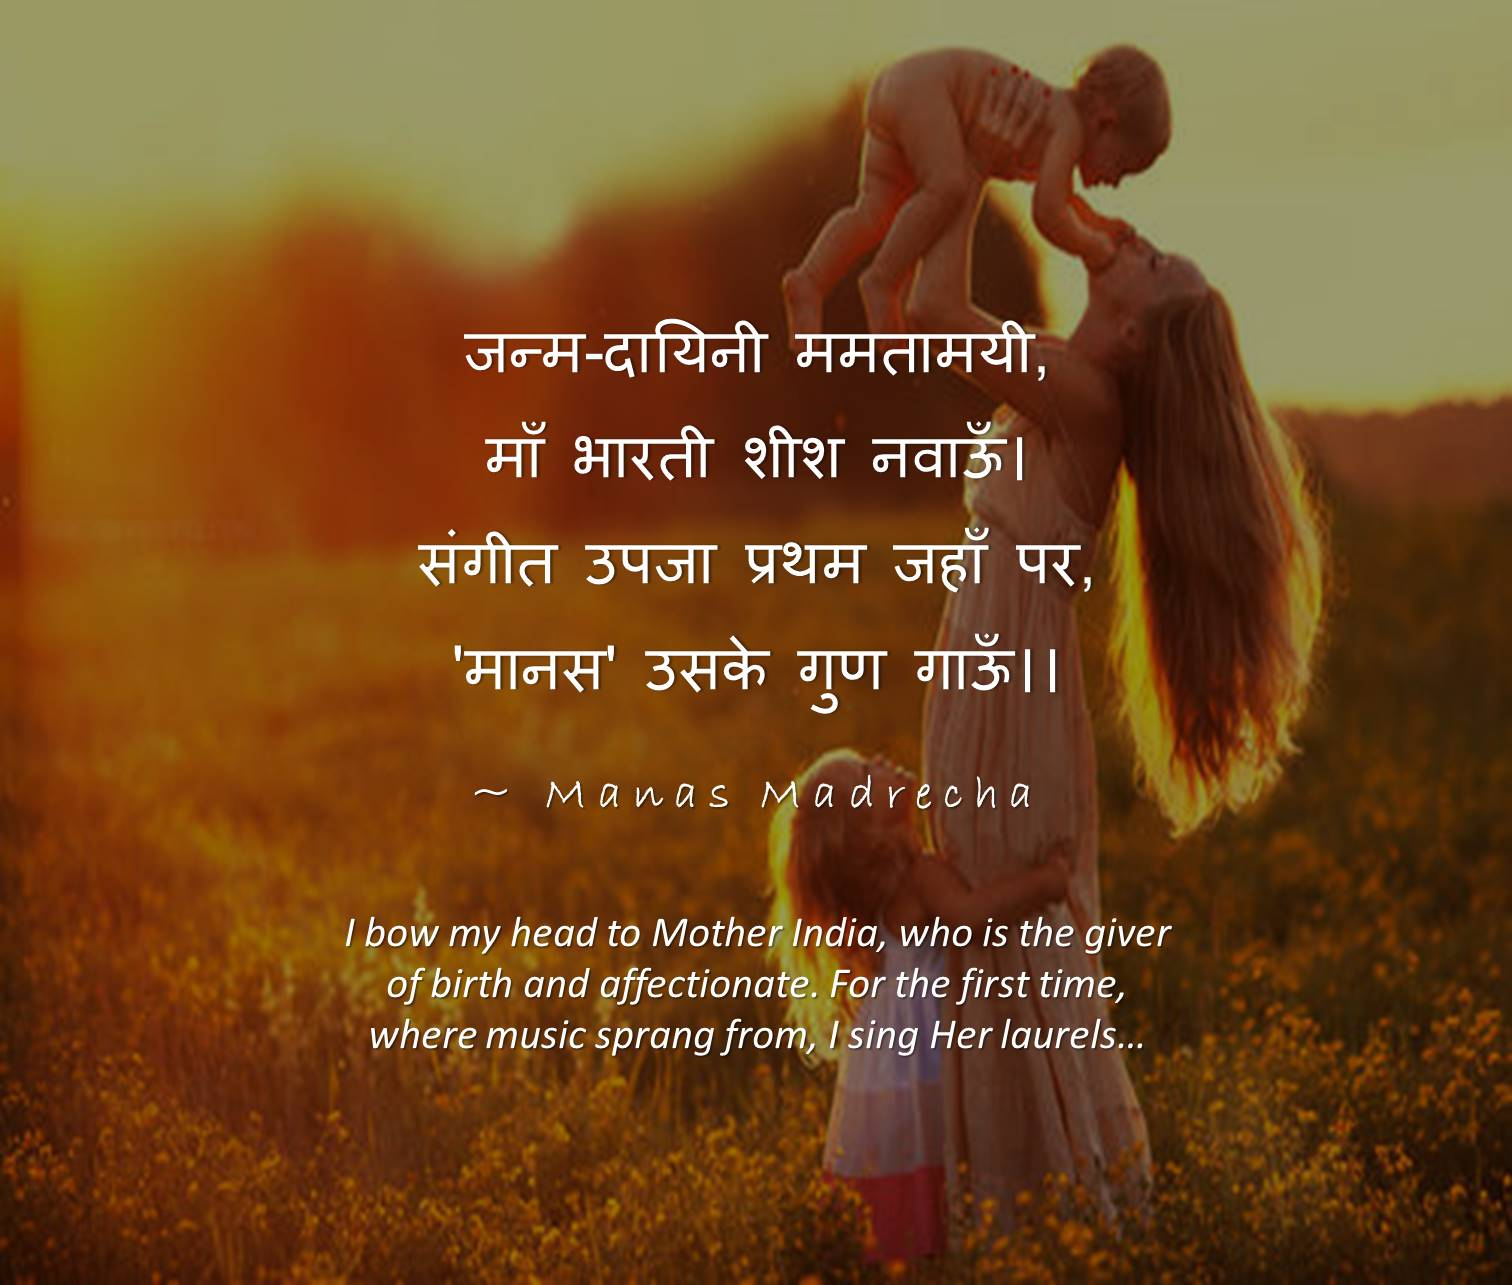 hindi poems on mother Long poem on mothers day in hindi, poem on mothers day in hindi language, mothers day poem in hindi for kids, mothers day poem in hindi 2016, mothers day poem in hindi from daughter, poem on mothers day in marathi, poem on mothers day special, poem on mothers day images, poem on mothers day in [].